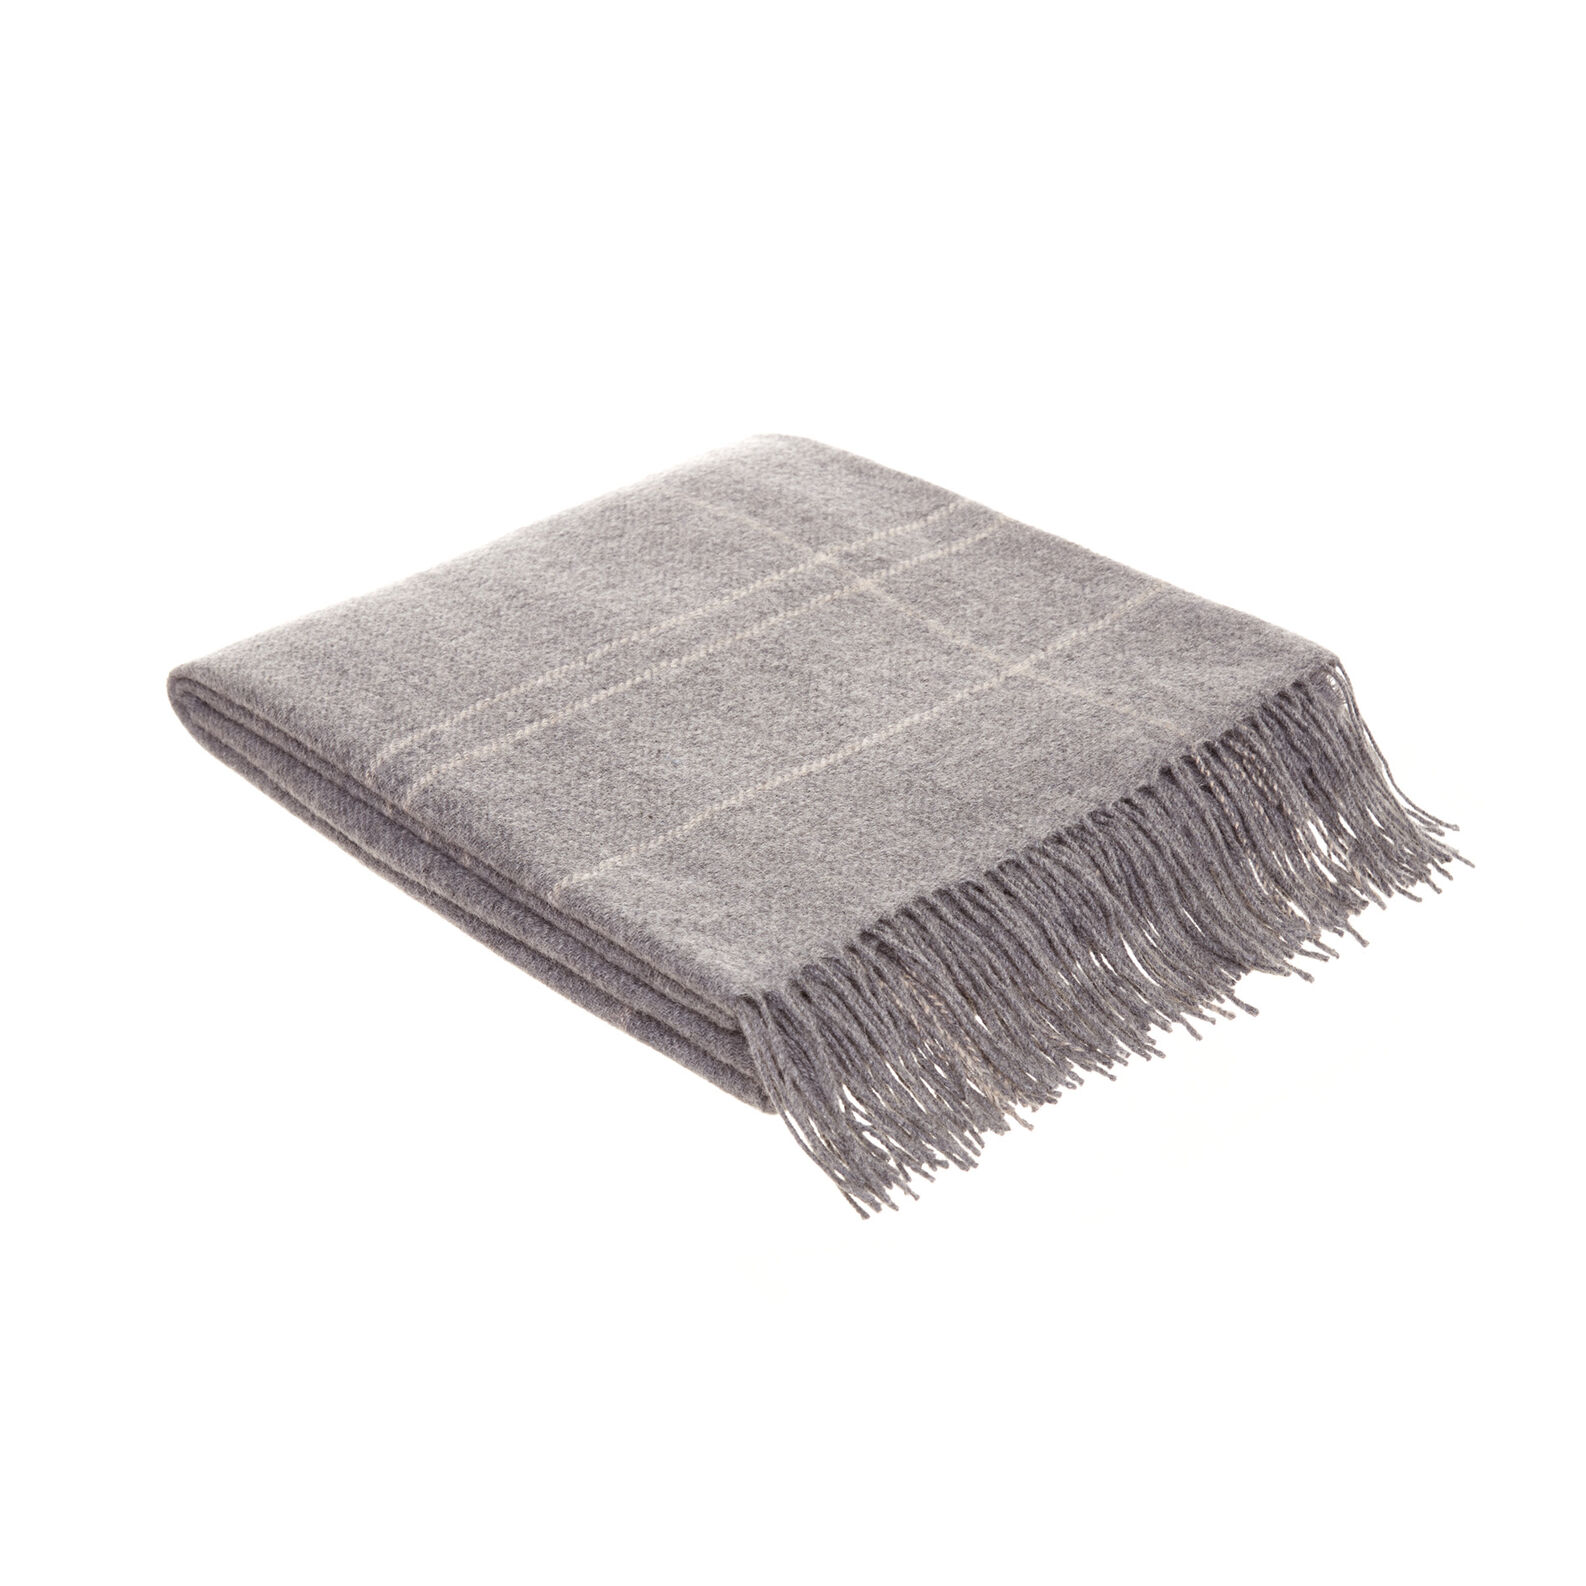 Wool blend plaid with fringes